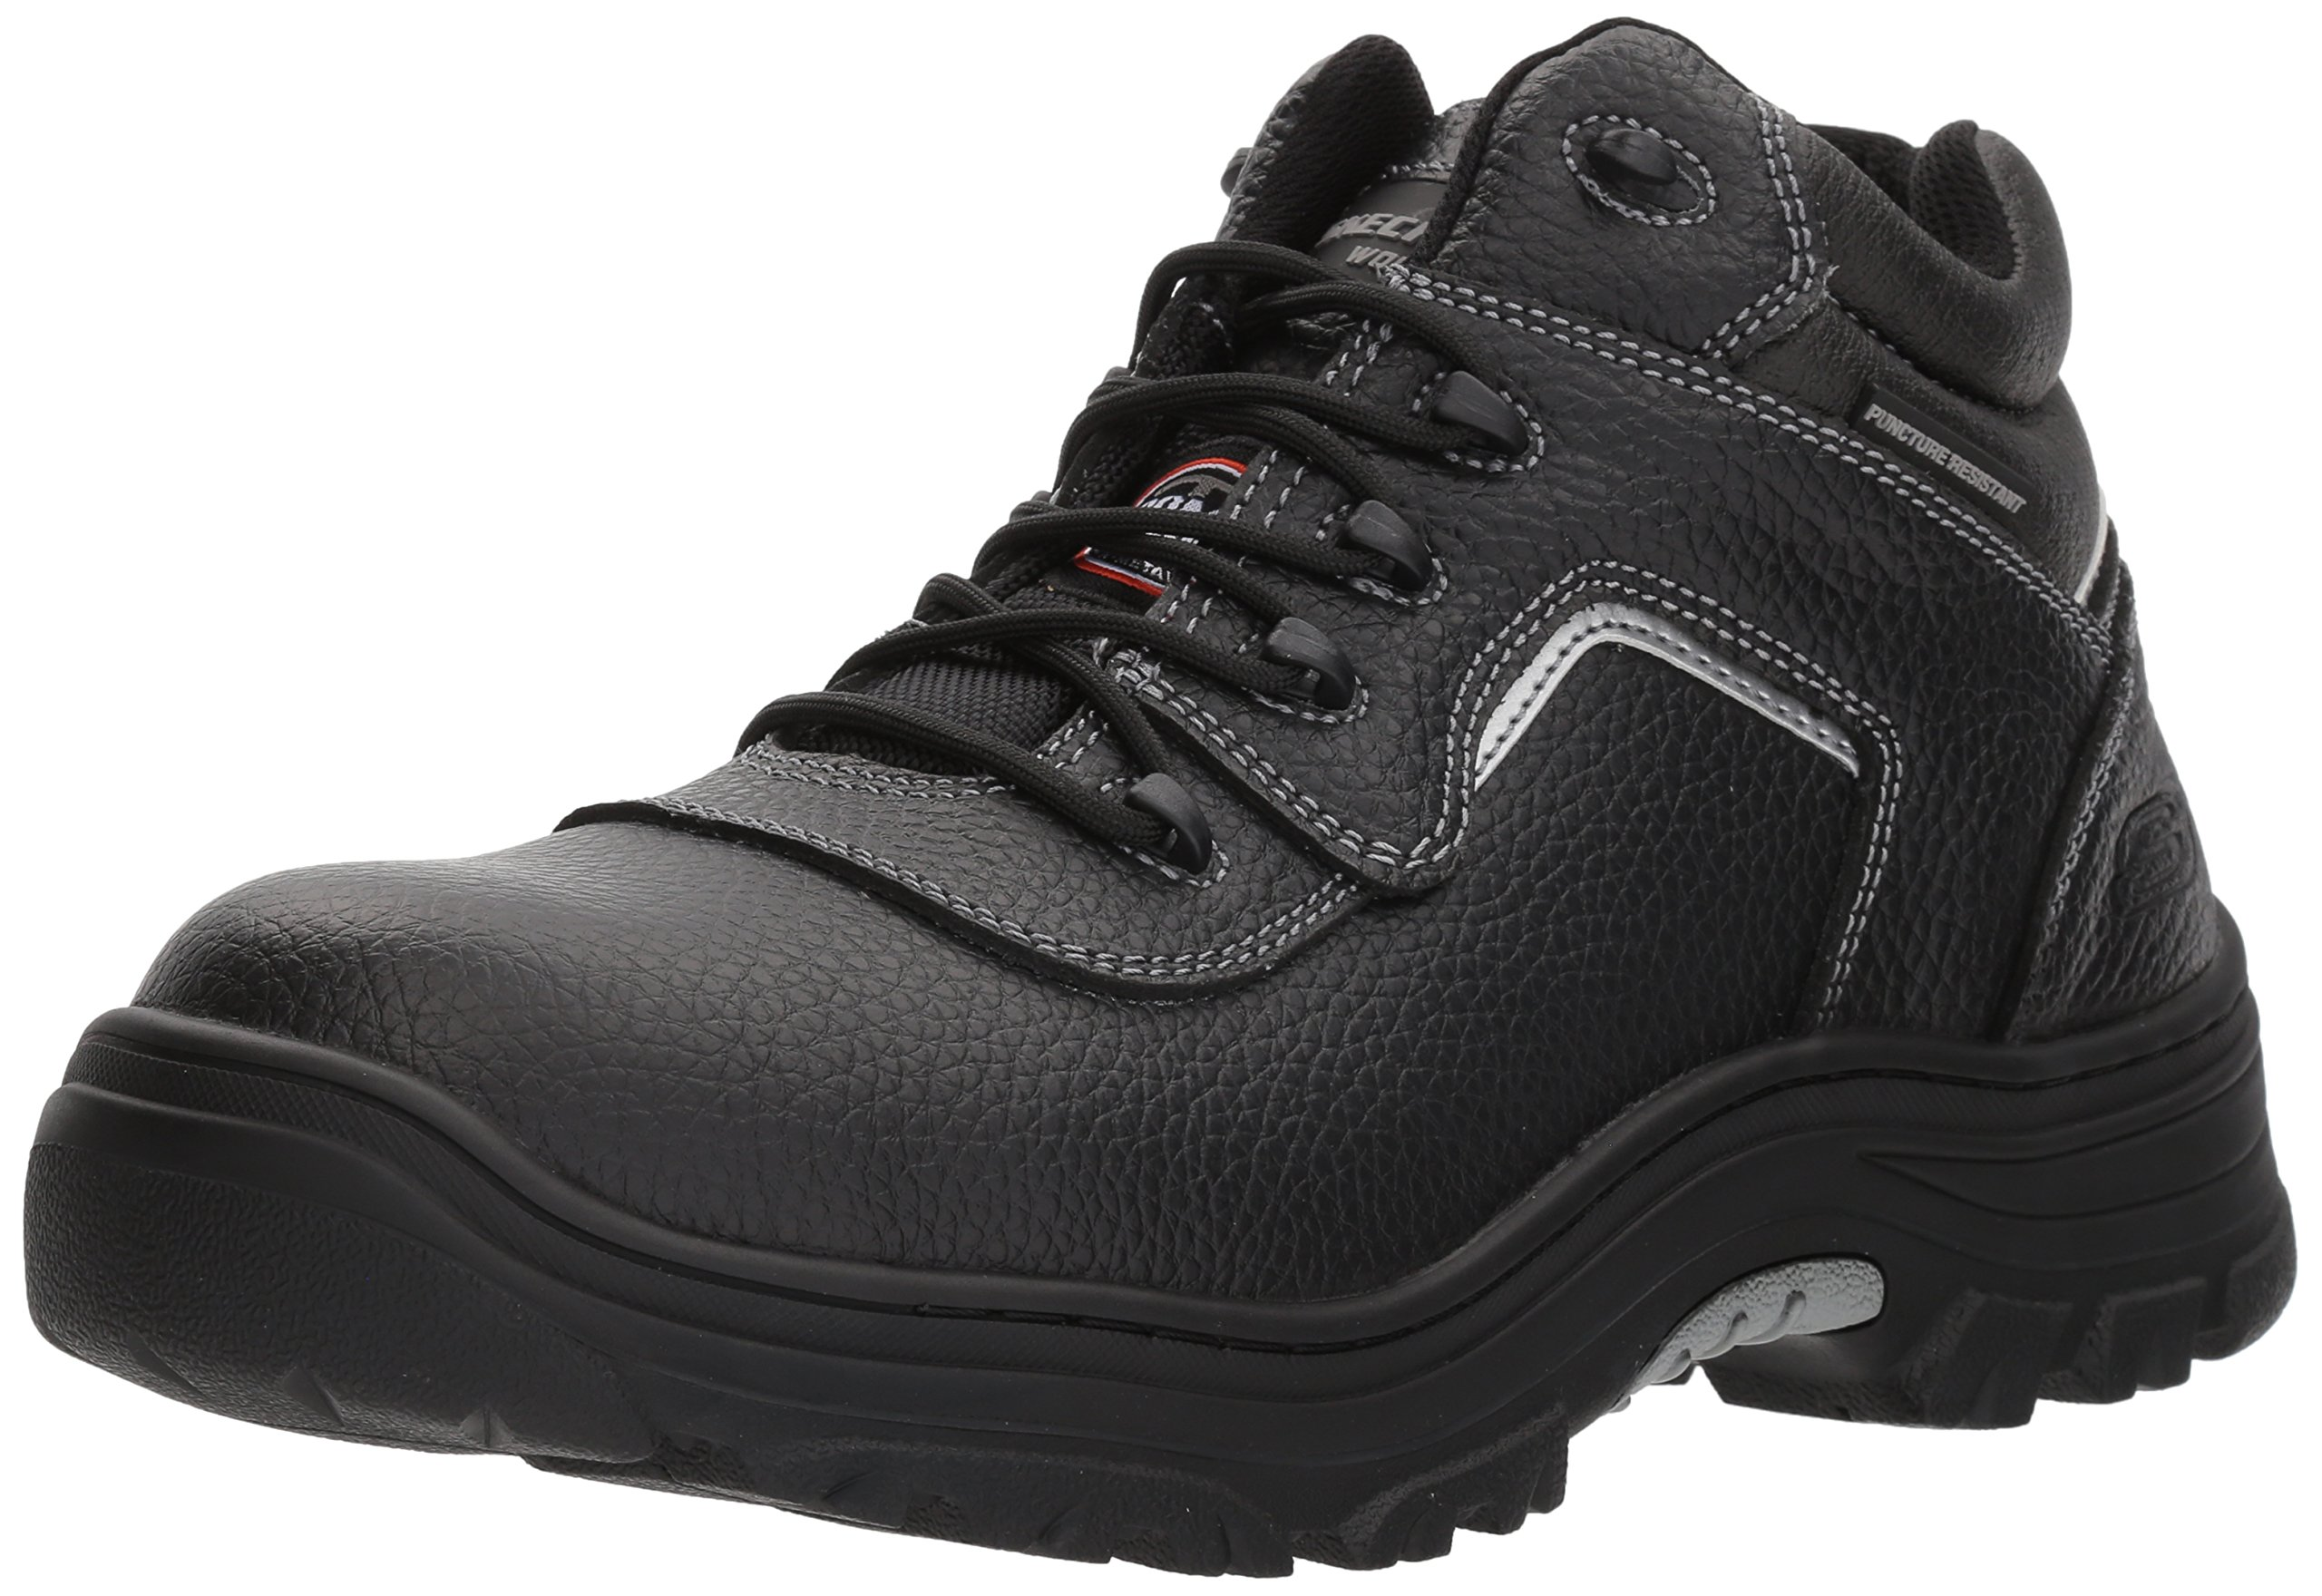 Skechers for Work Men's Burgin-Sosder Industrial Boot,Black Embossed Leather,9 W US by Skechers